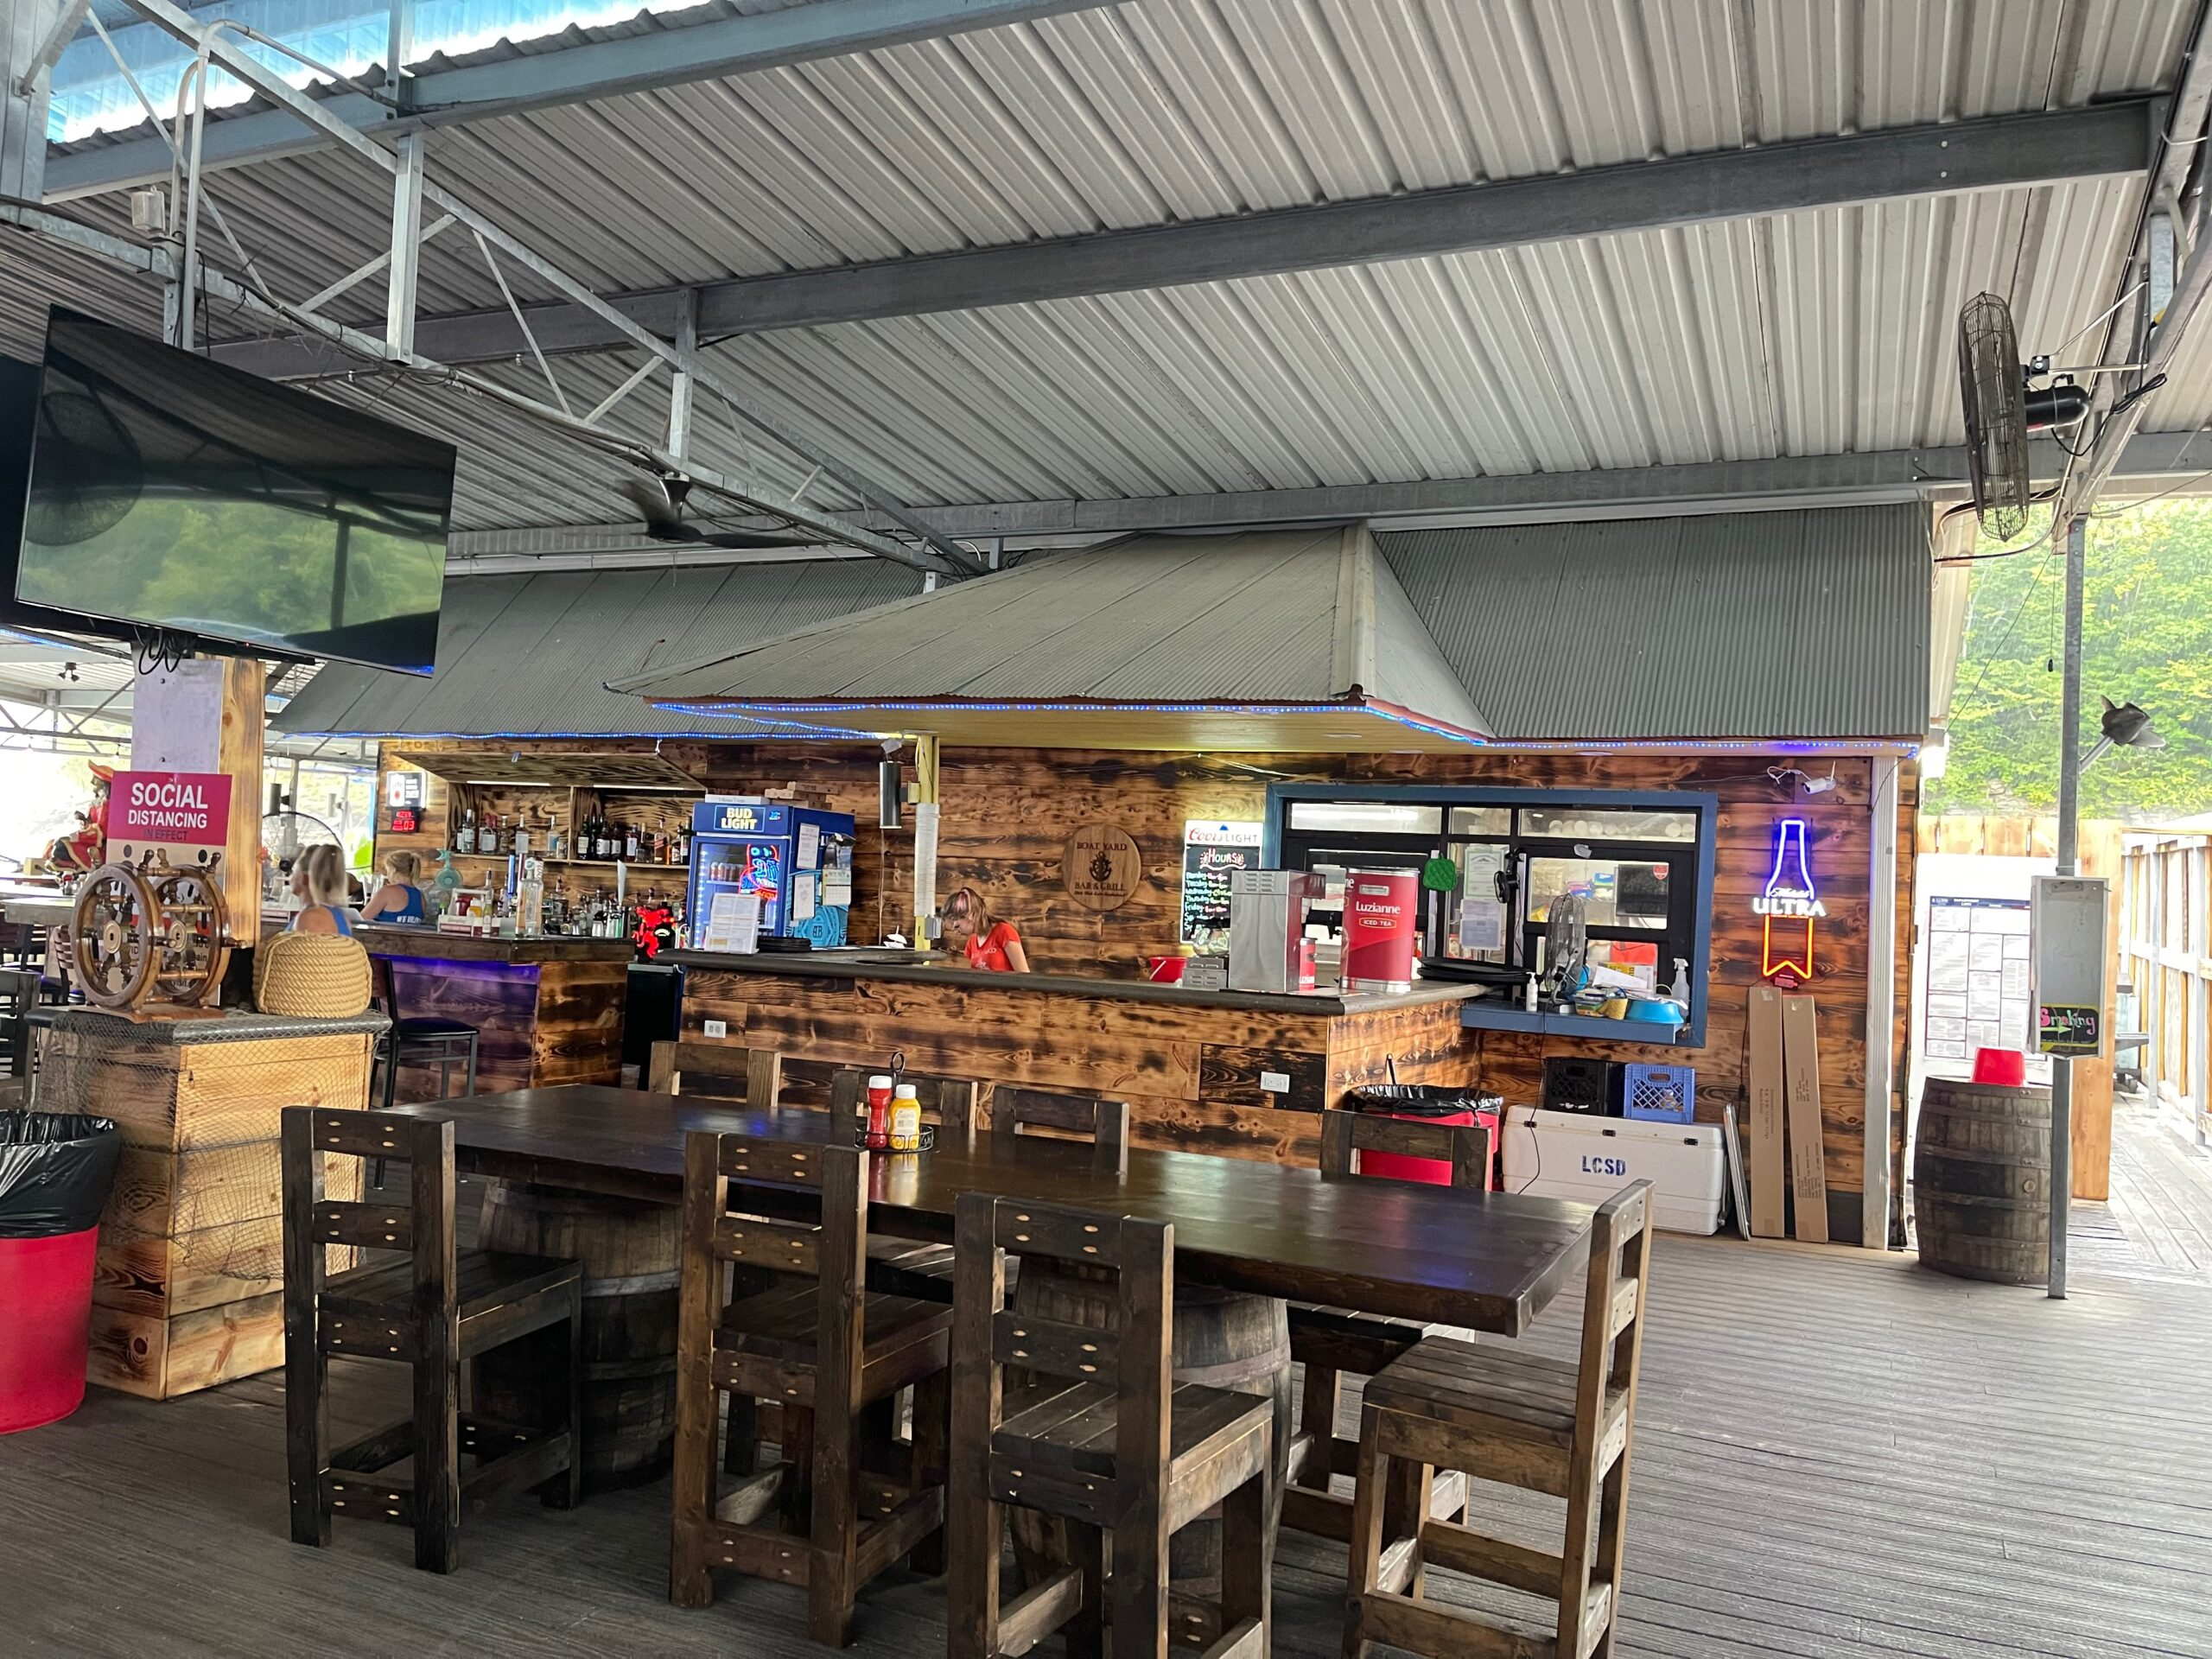 Small towns in KY - The Boat Yard Bar & Grill